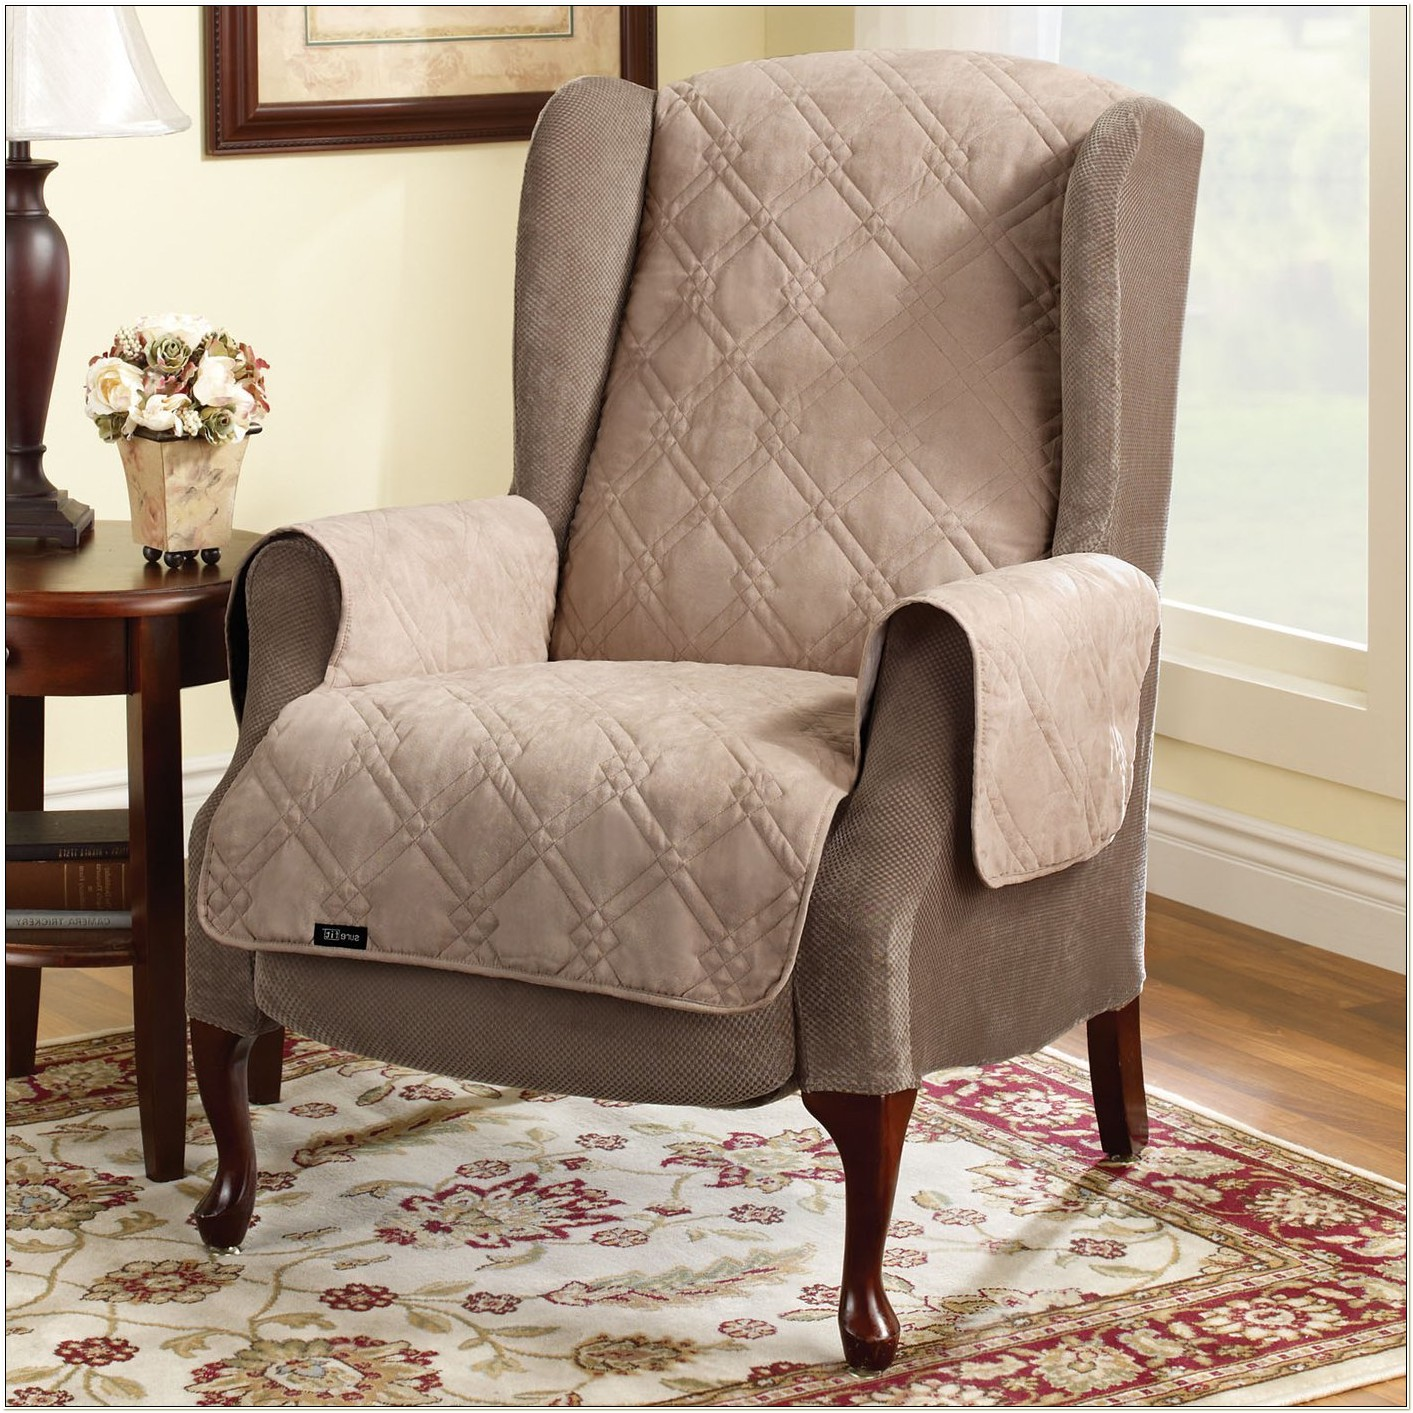 Pet Covers For Wingback Chairs